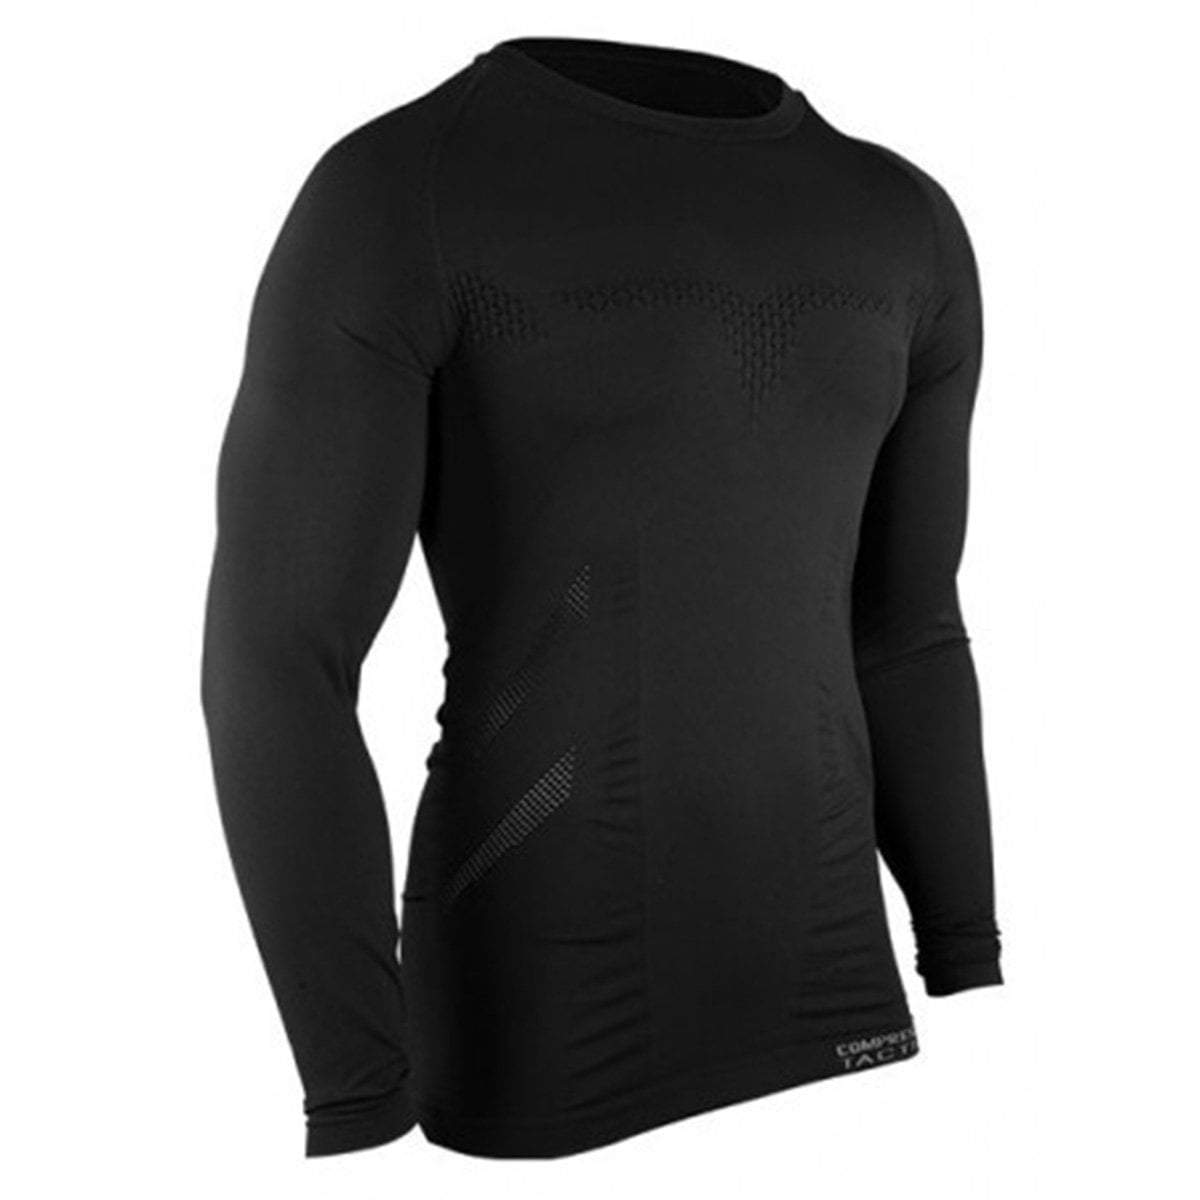 Compressport Tactical Legion Compression LS Shirt Black | UKMC Pro